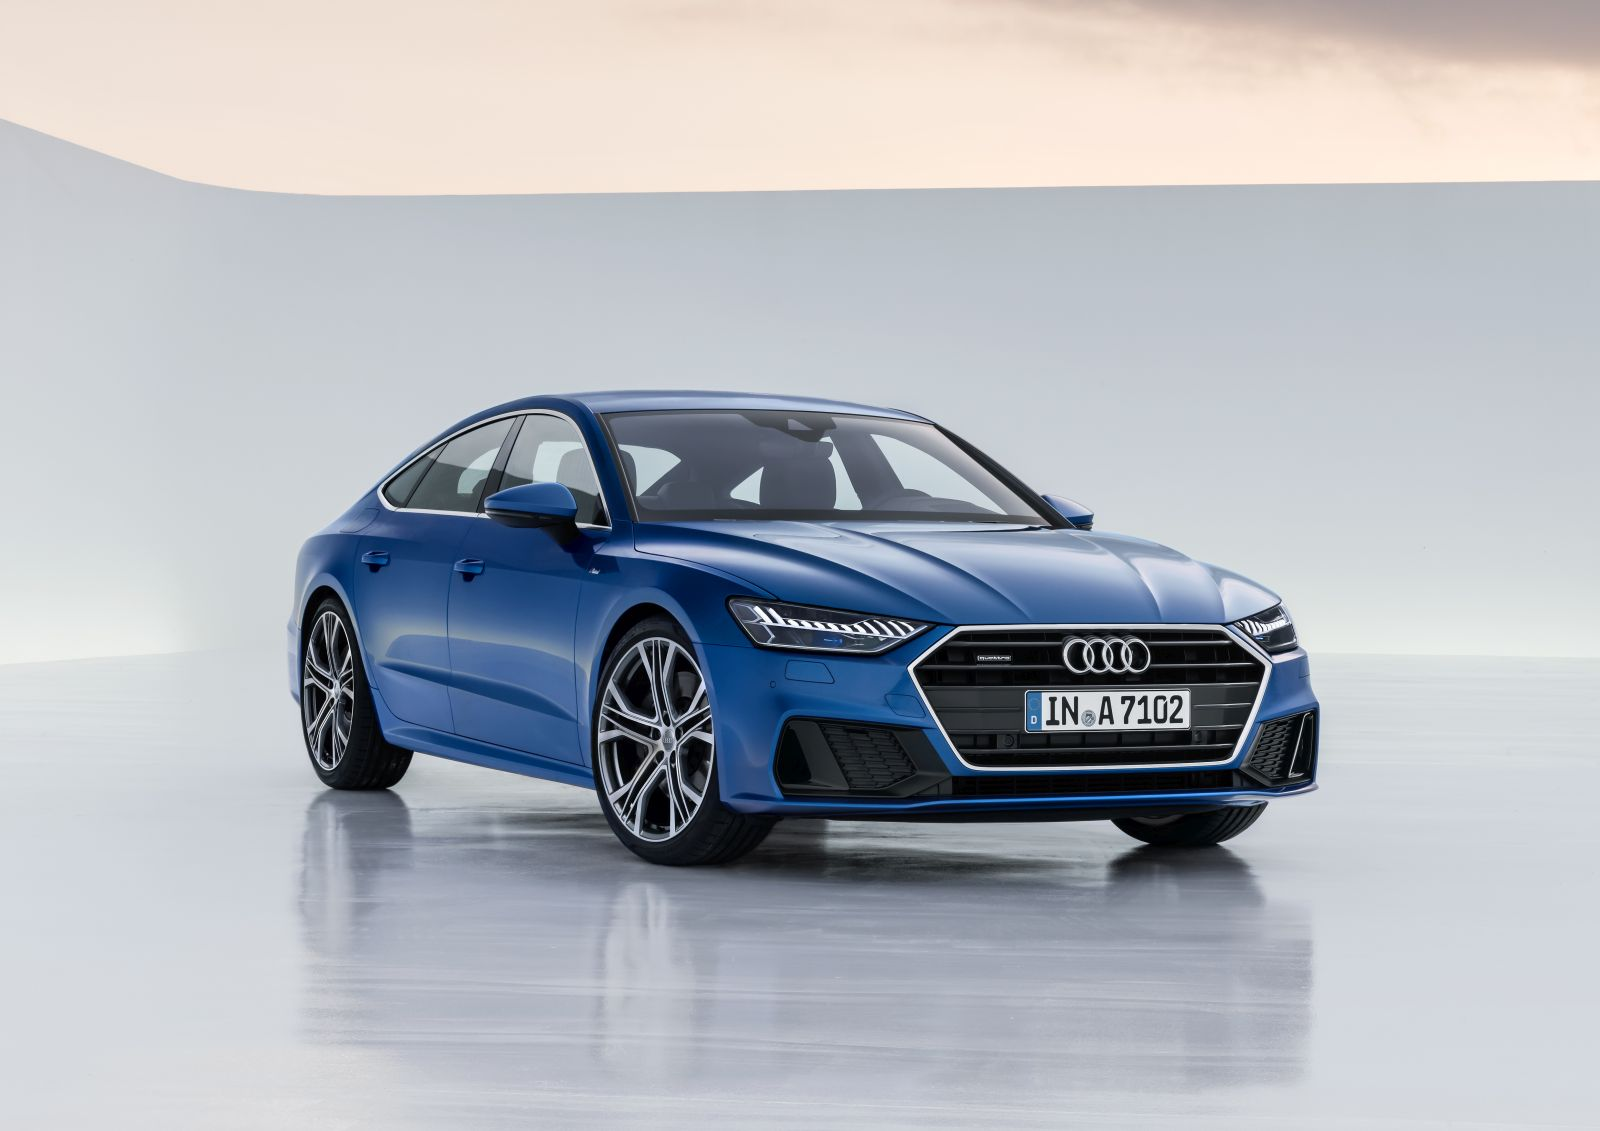 2018 Audi A7 >> New 2018 Audi A7 Sportback Images, Features, Tech Specs, Fuel Economy And Details | Motoroids